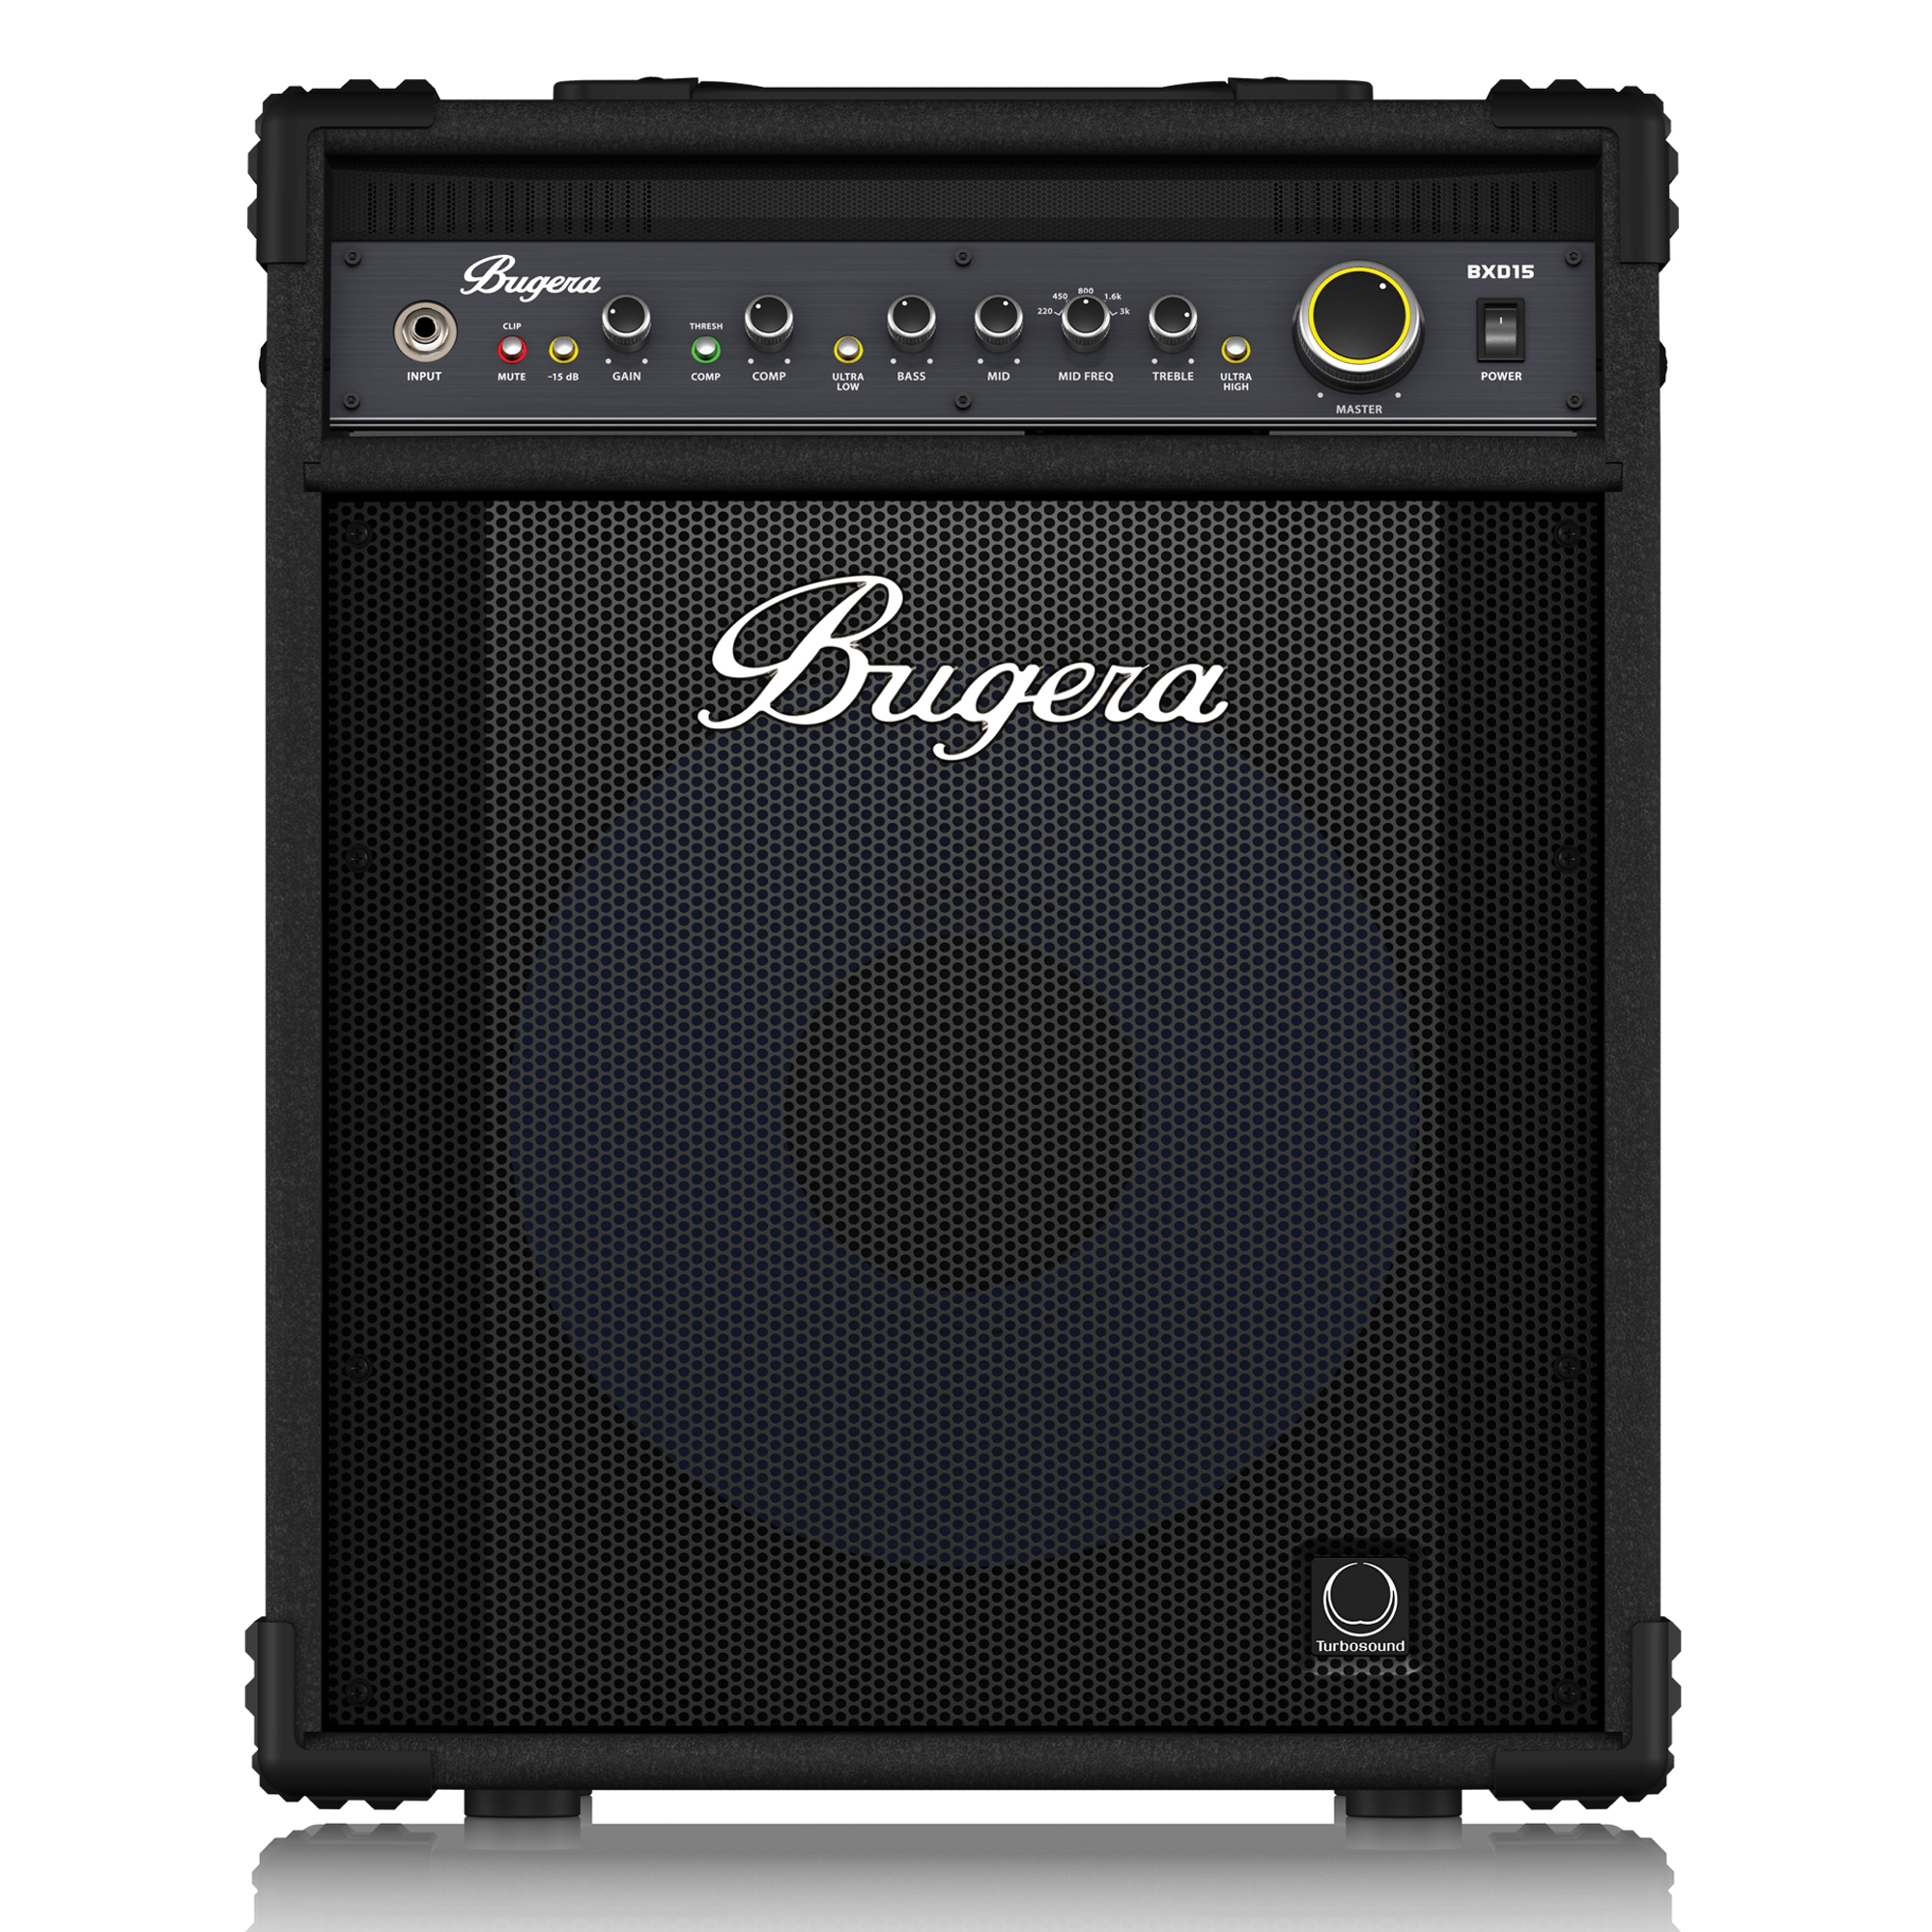 "1000-Watt Bass Amplifier with Original 15"" TURBOSOUND Aluminum-Cone Speaker, MOSFET Preamp, Compressor and DYNAMIZER Technology"